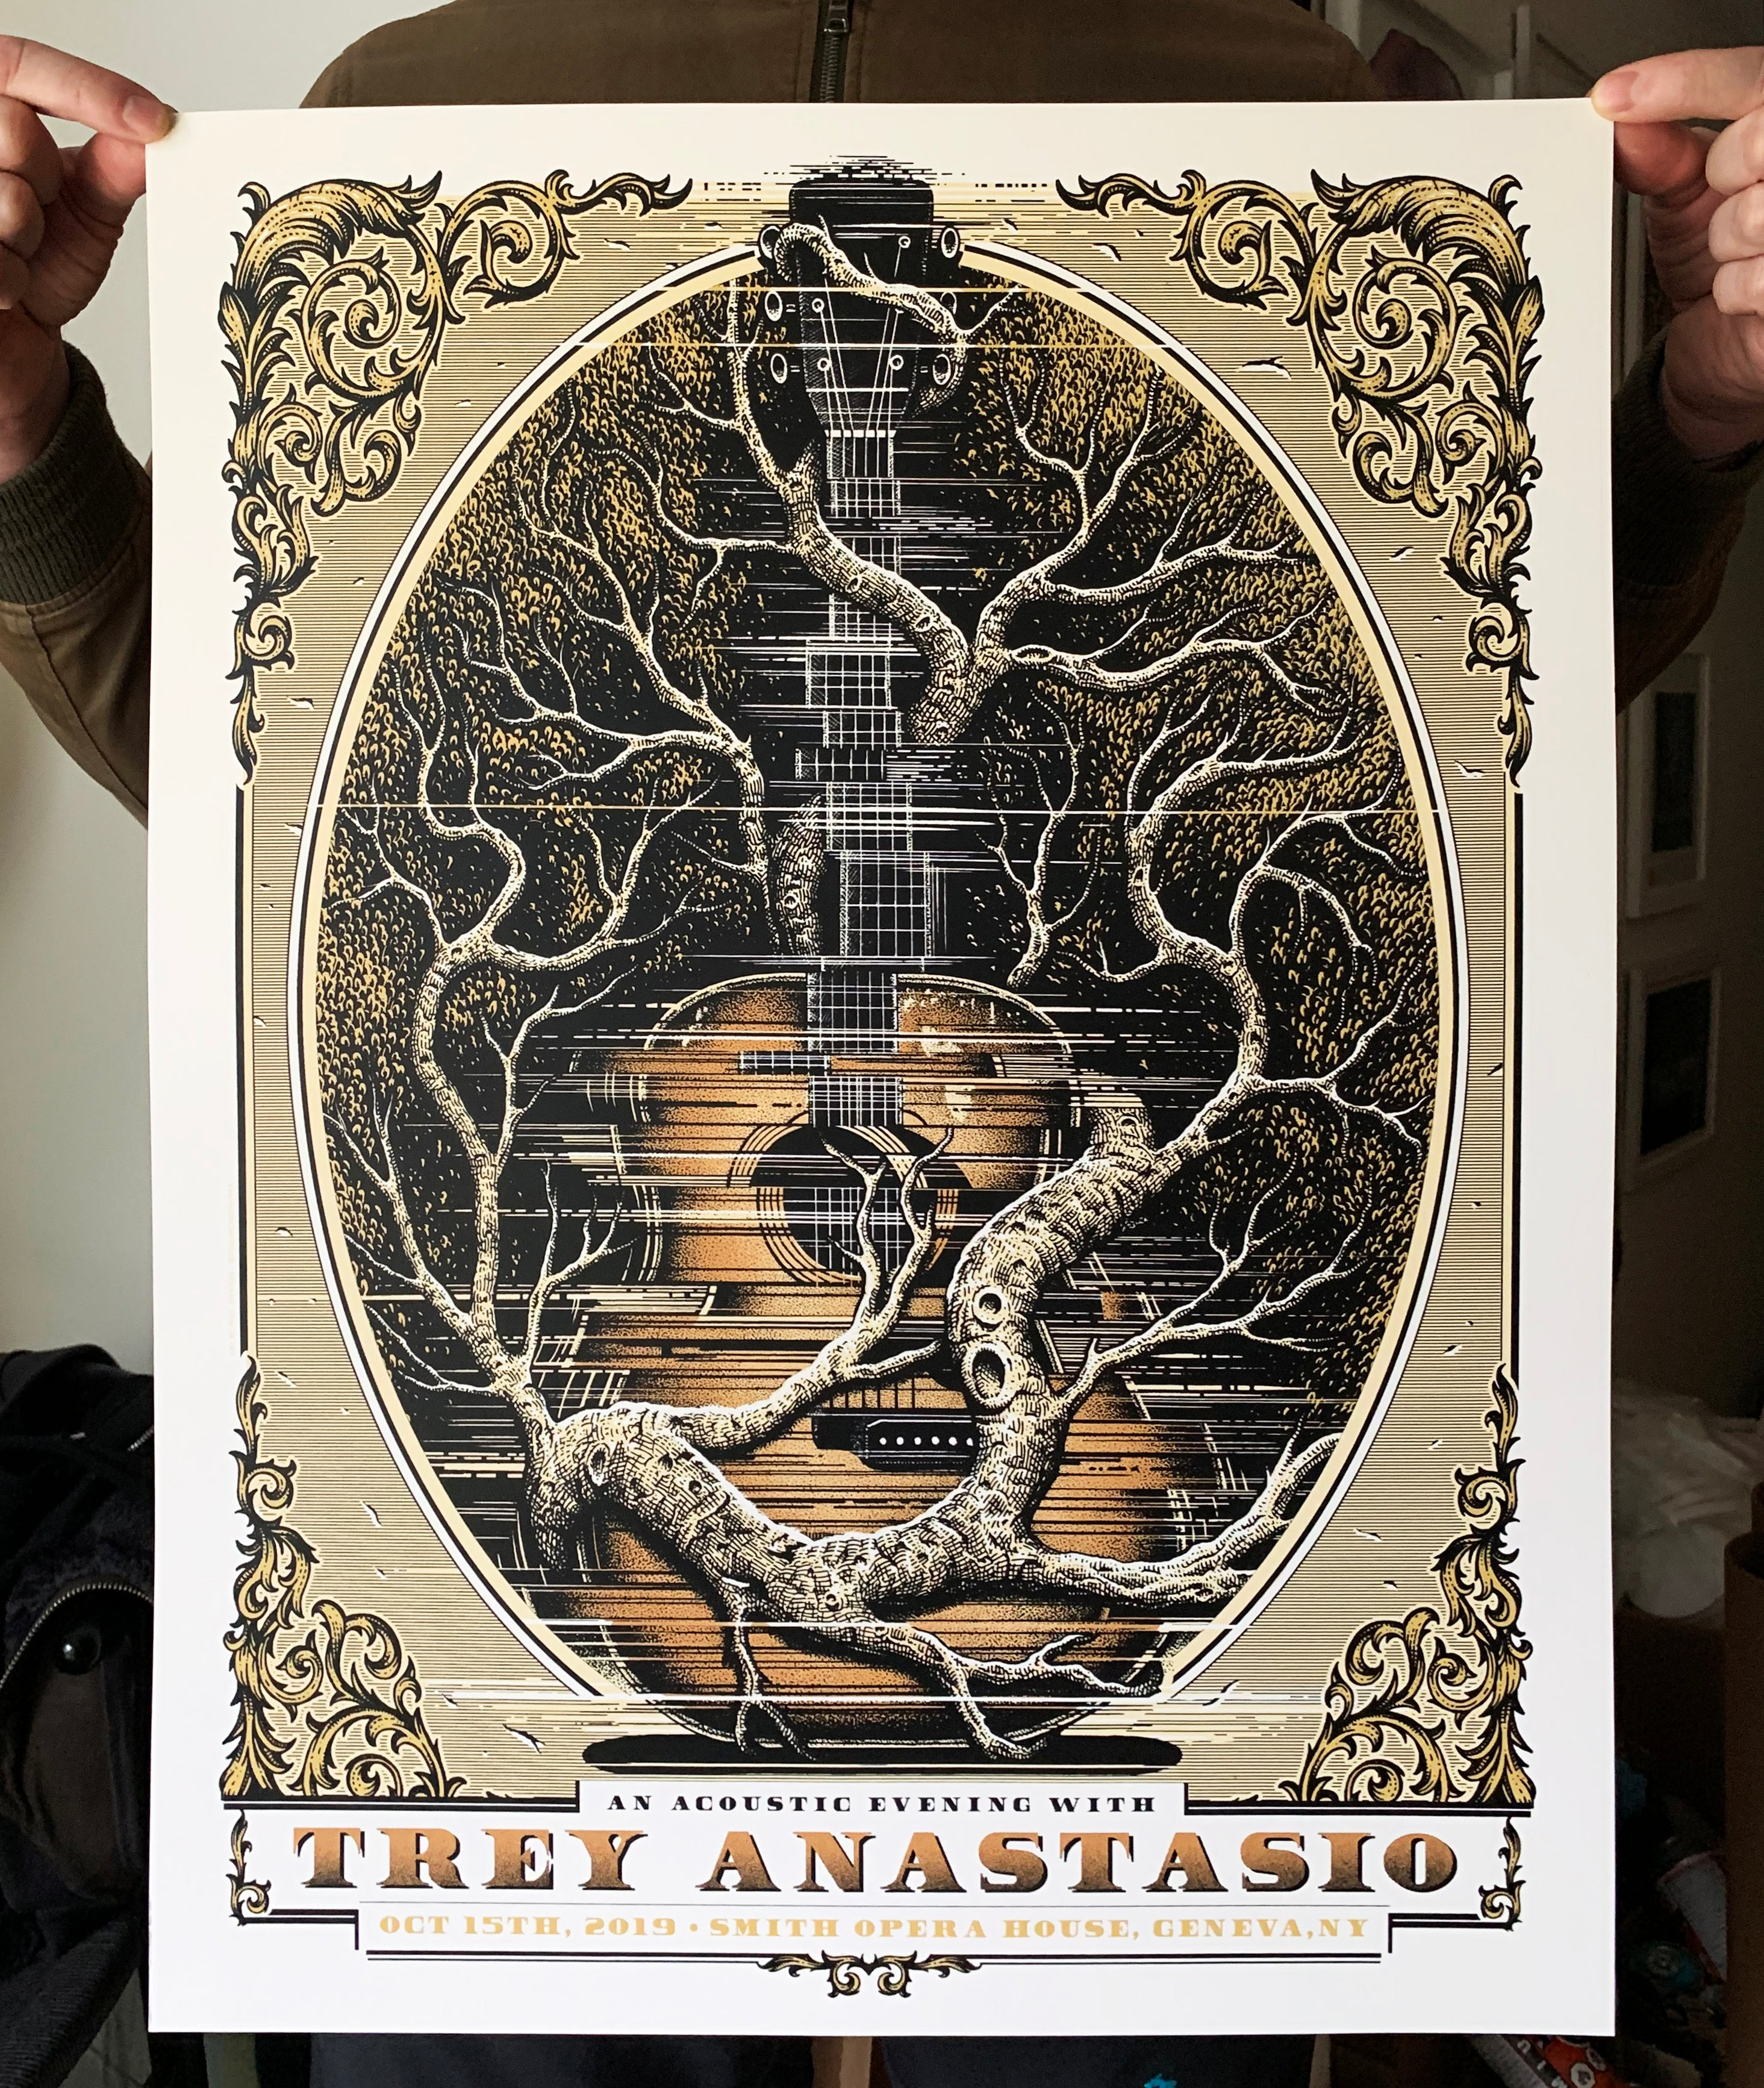 Trey Anastasio Geneva screen printed poster - regular.